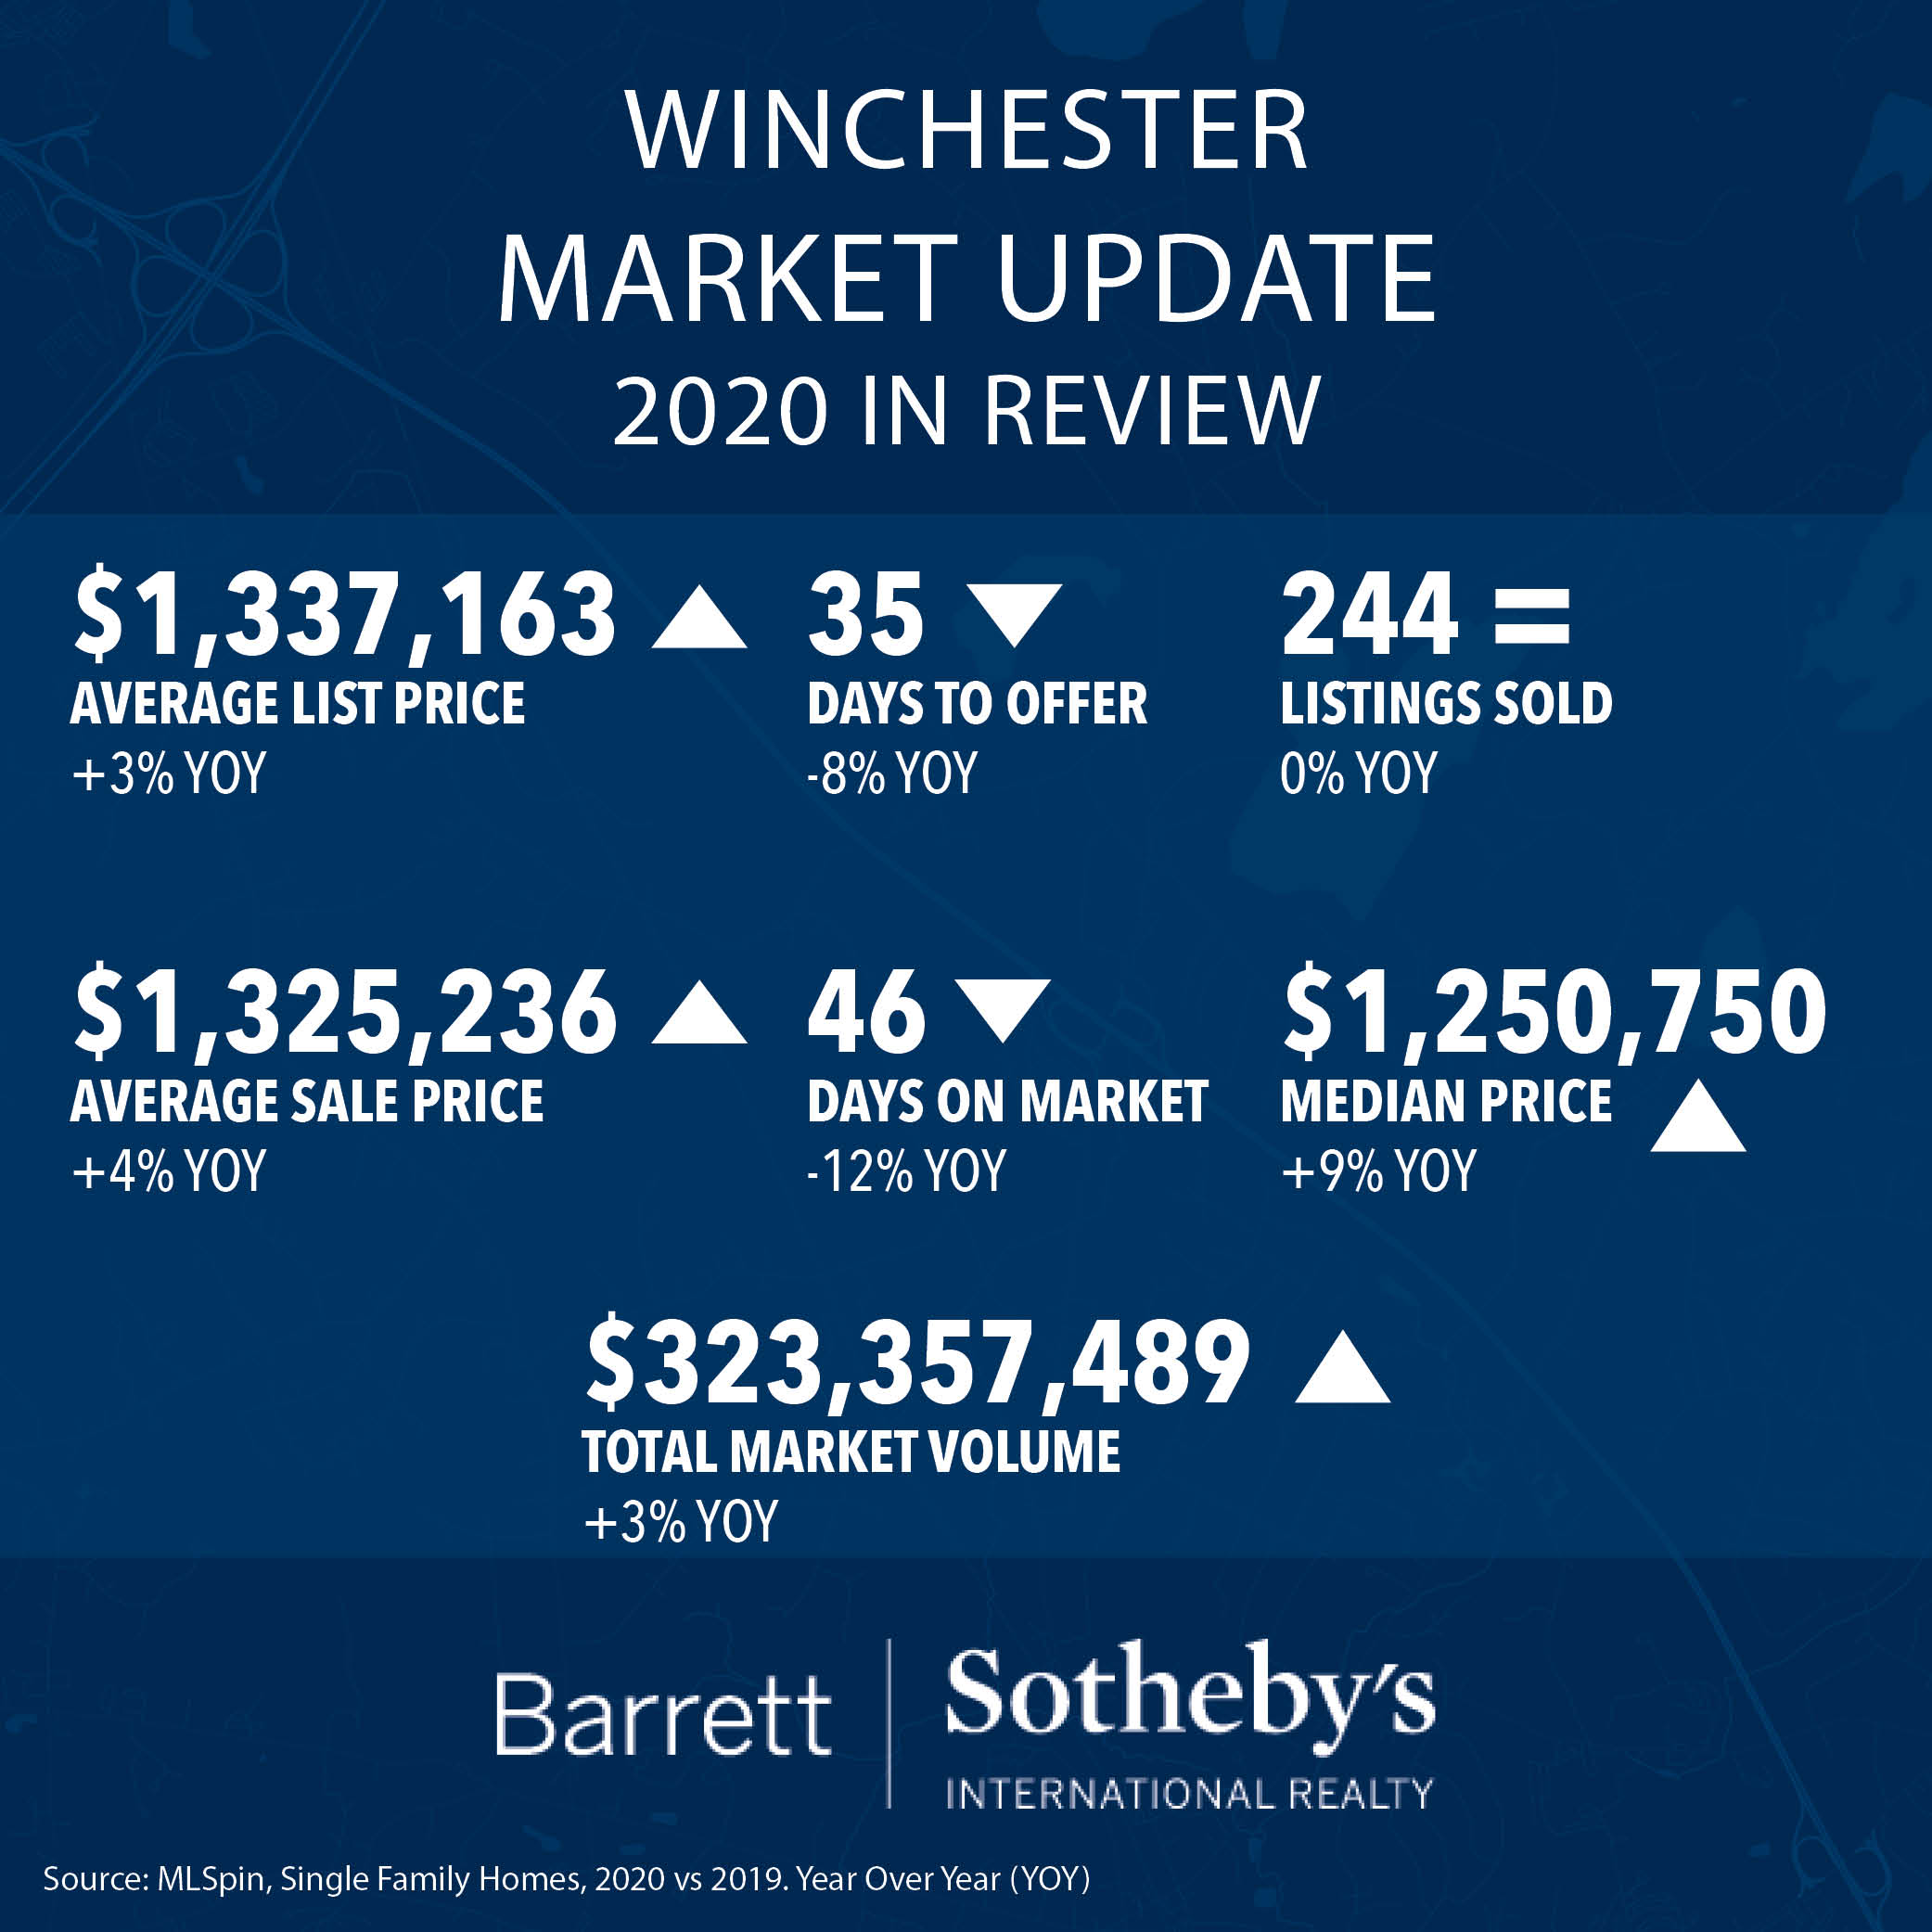 Winchester Market Update: 2020 in Review